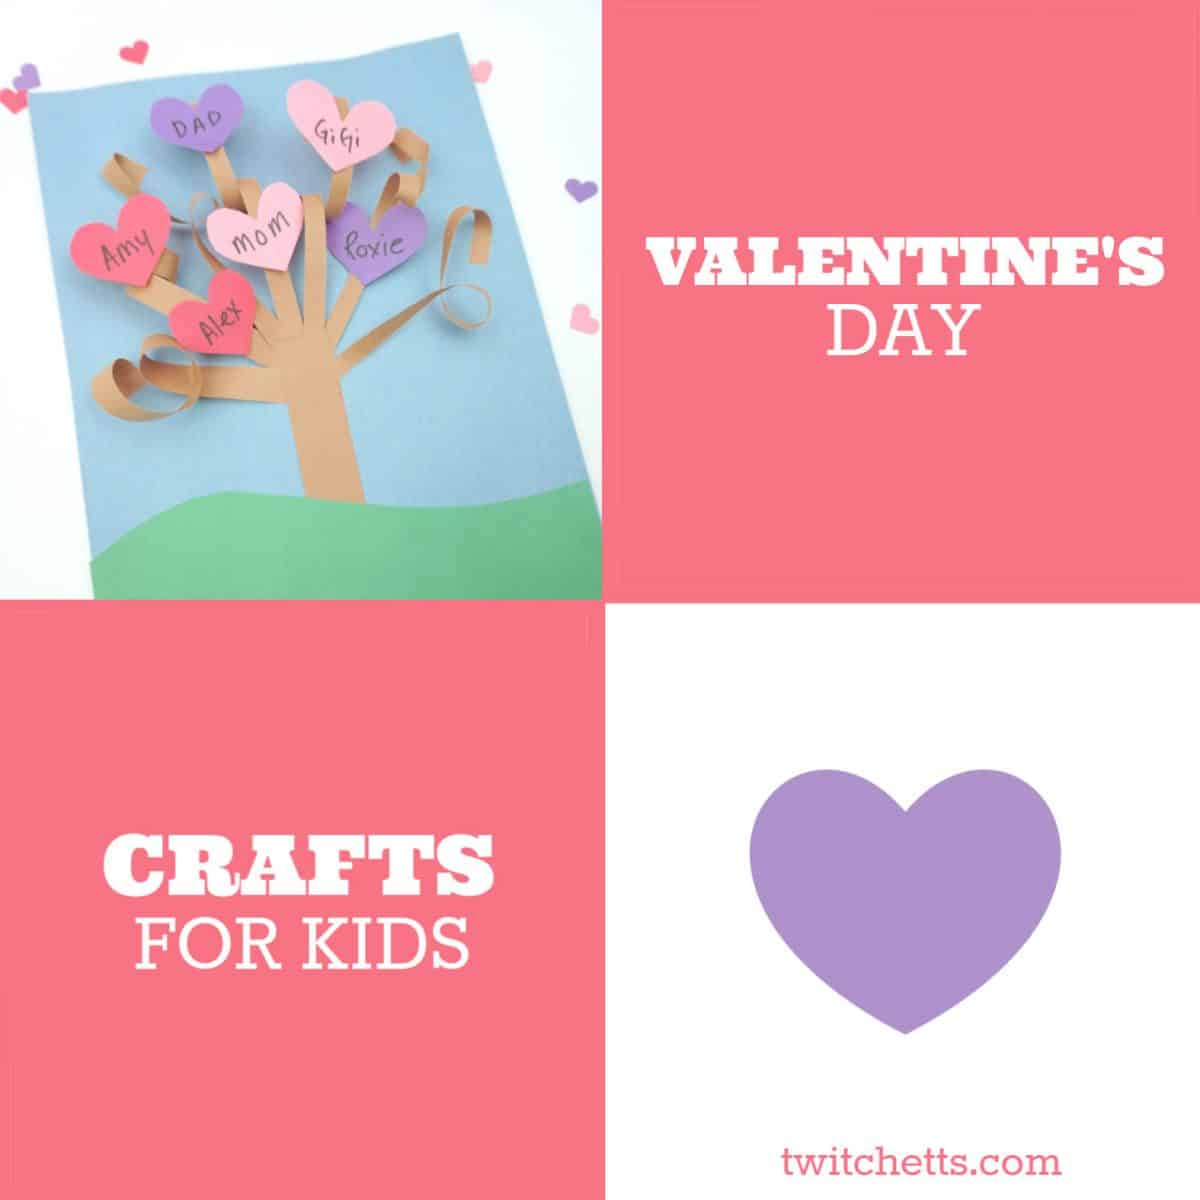 19 Valentine's Day crafts and activities for kids